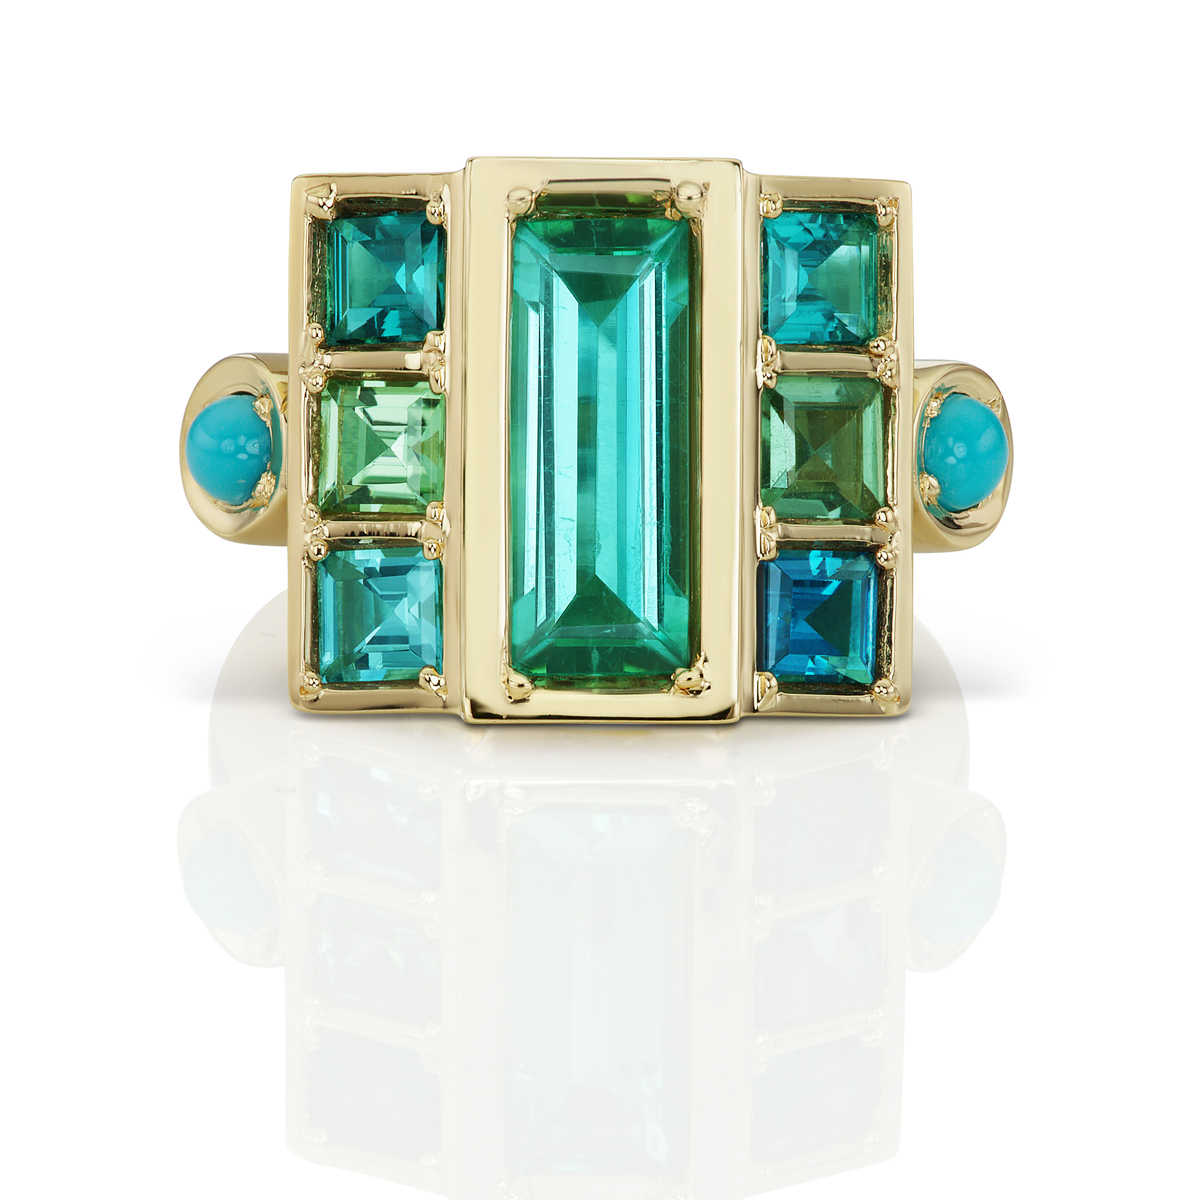 Jane Taylor Jewelry-the Cloud Swing ring with tourmaline.jpg